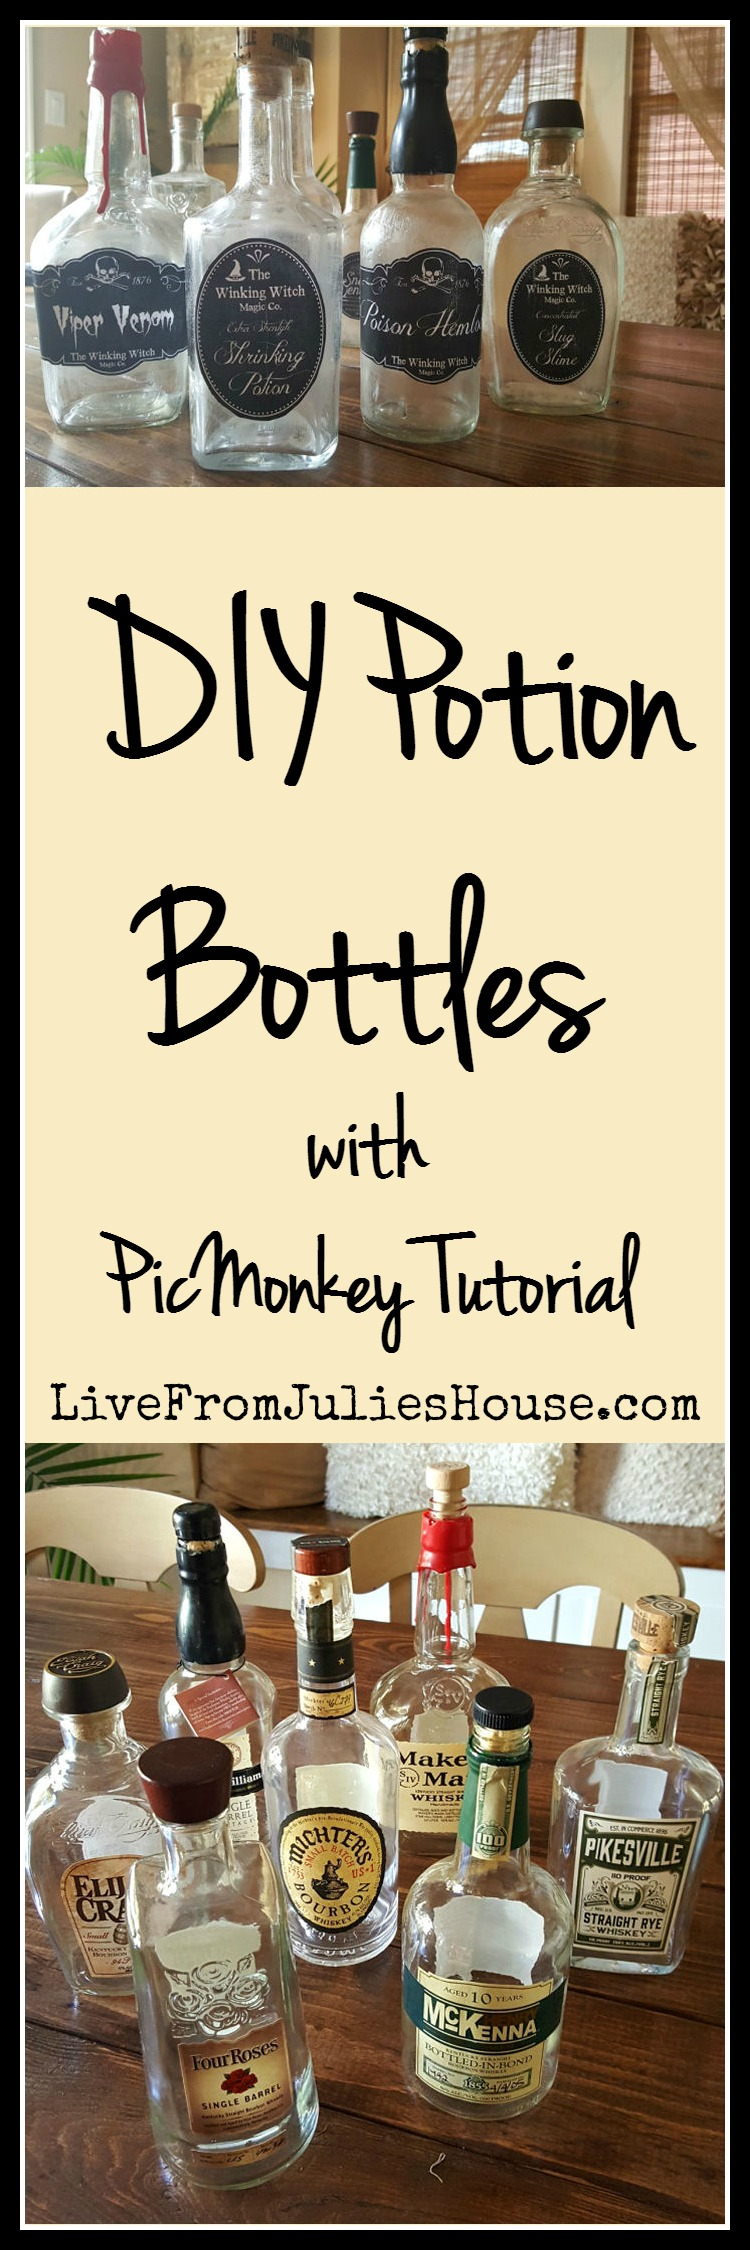 Halloween Decor on the Cheap: DIY Potion Bottles - Make spooky DIY Potion Bottles for Halloween out of bourbon bottles using my easy PicMonkey tutorial.